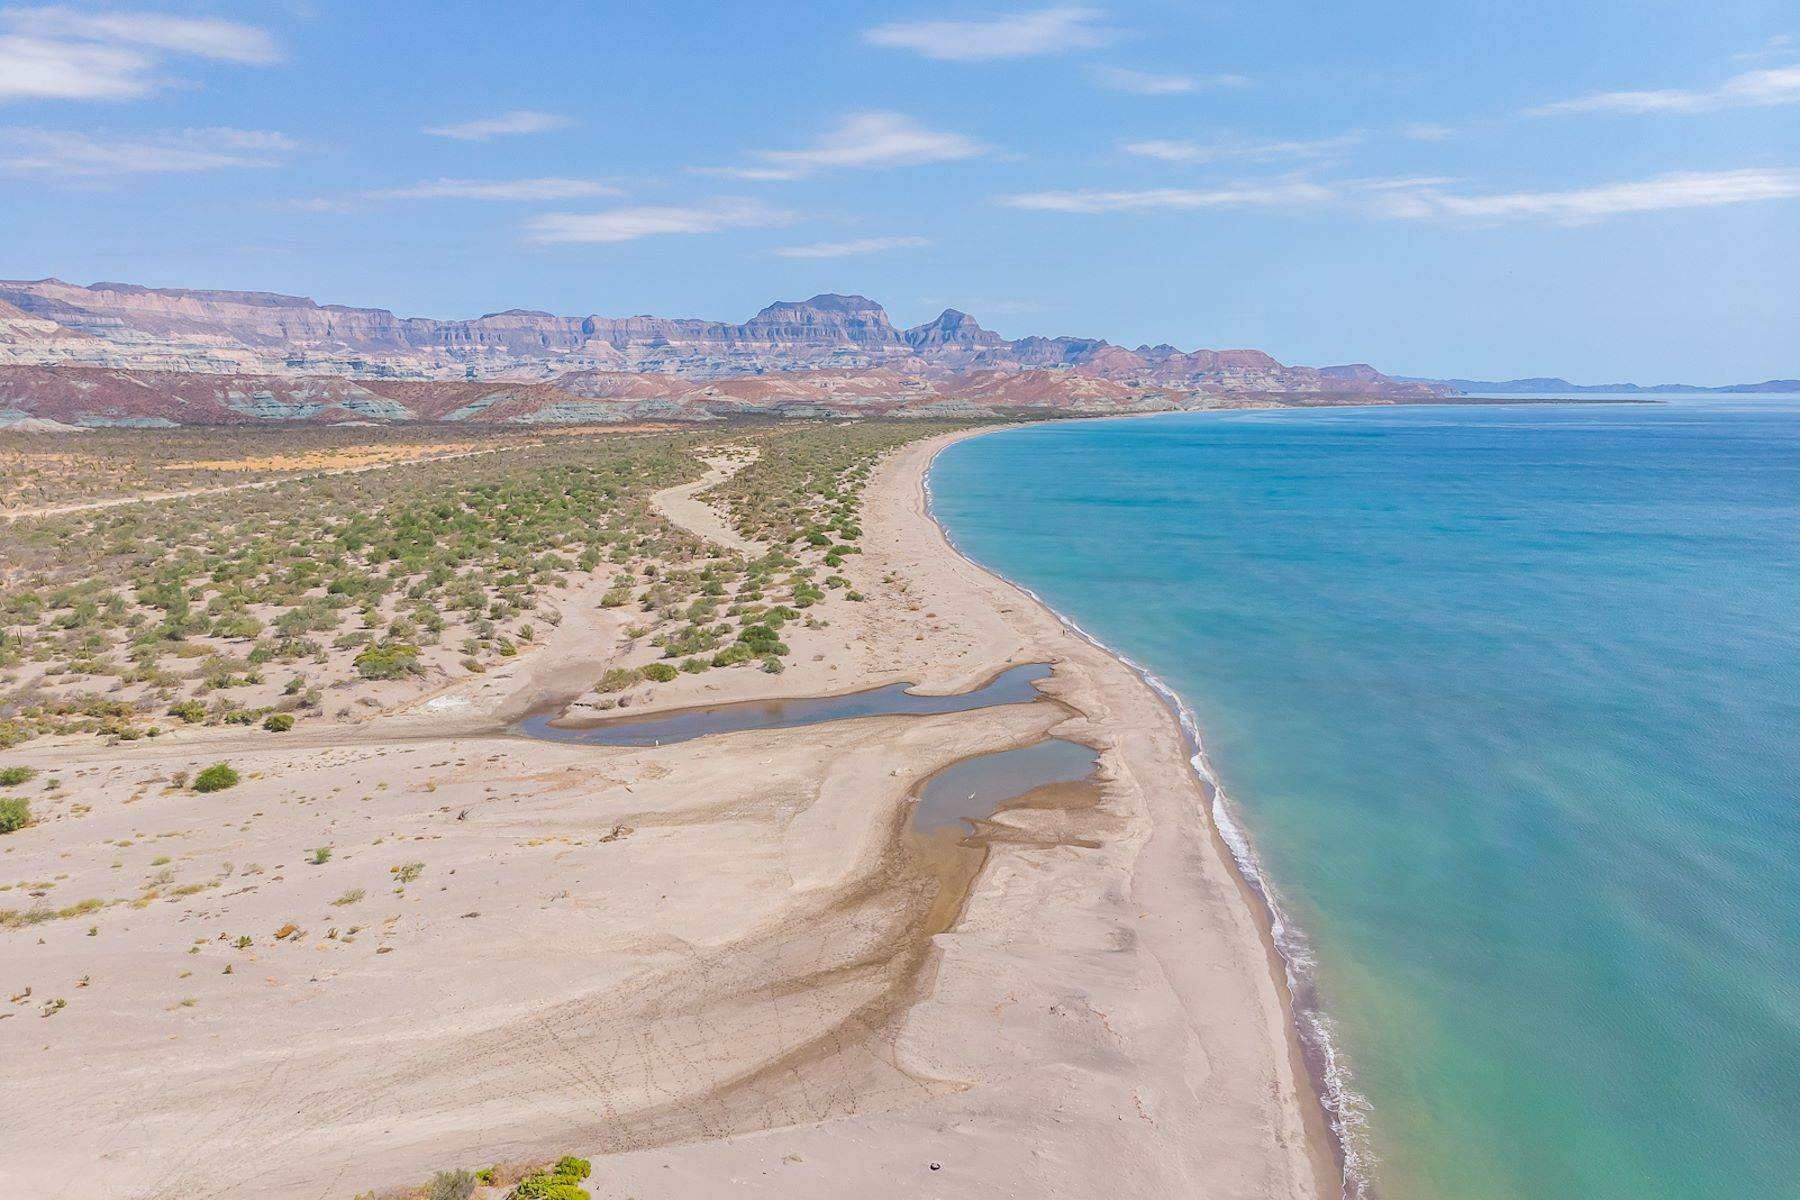 Land for Sale at Bahia Coyote La Paz, Baja California Sur Mexico